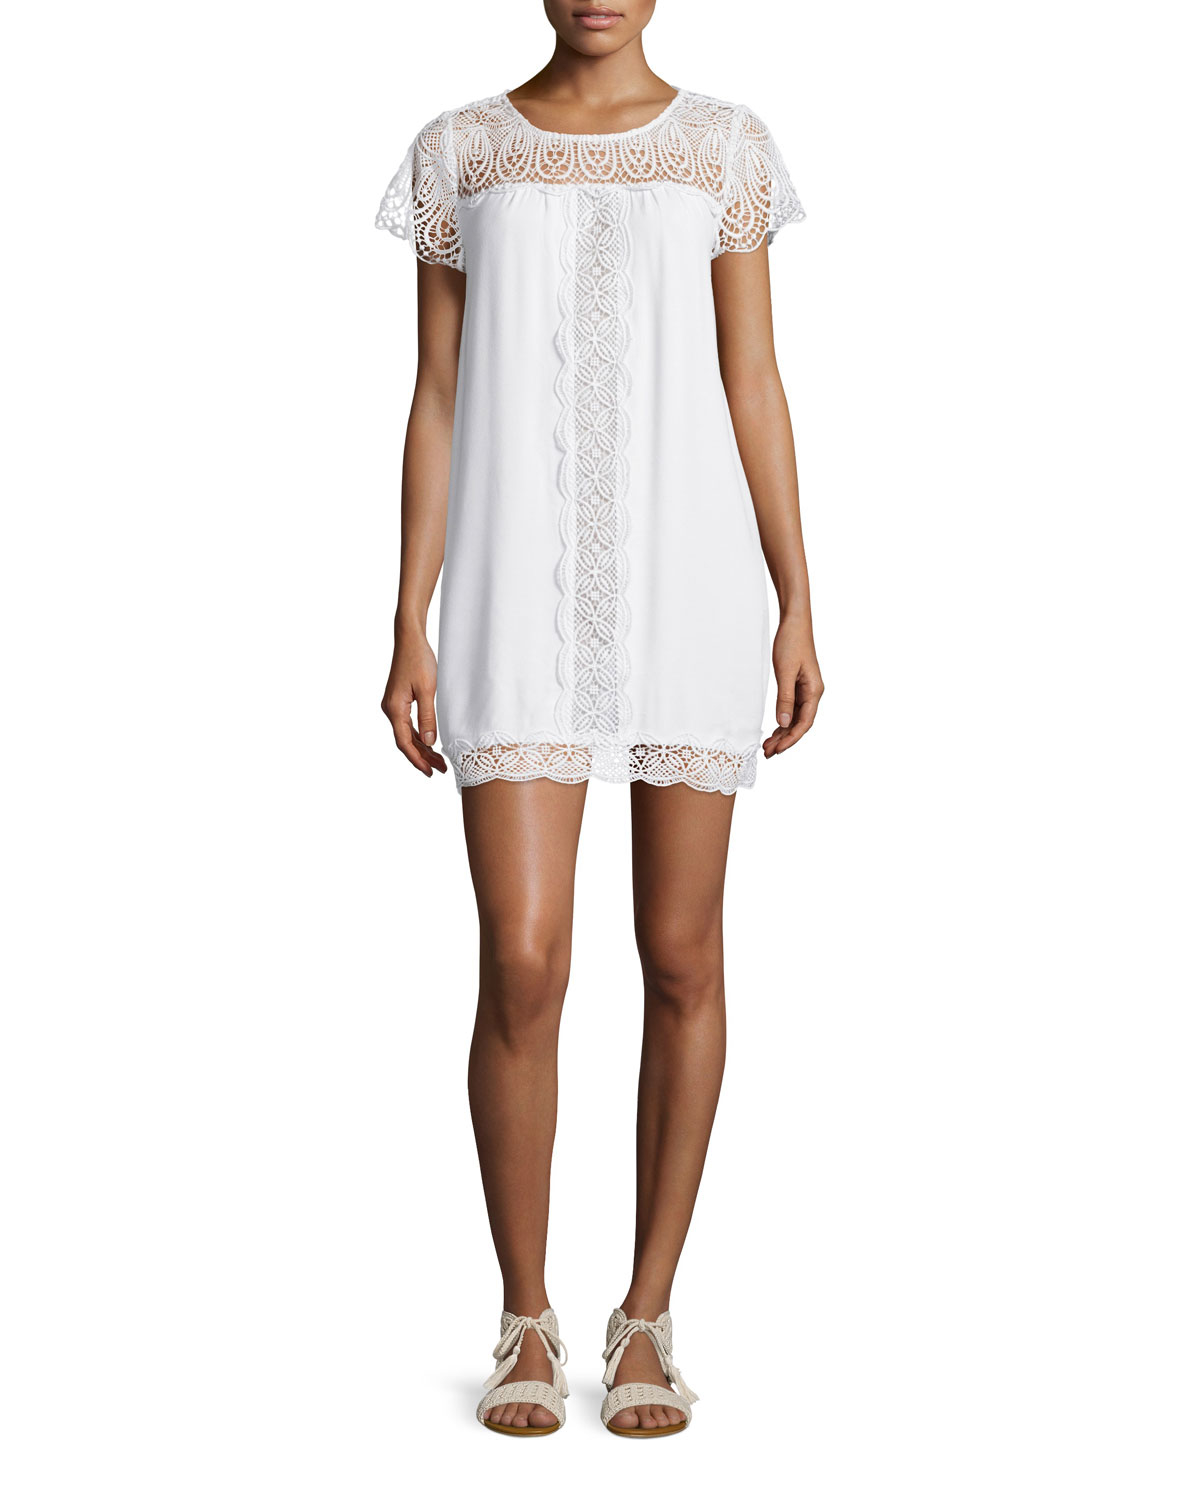 Joie kastra embroidered lace dress in white lyst